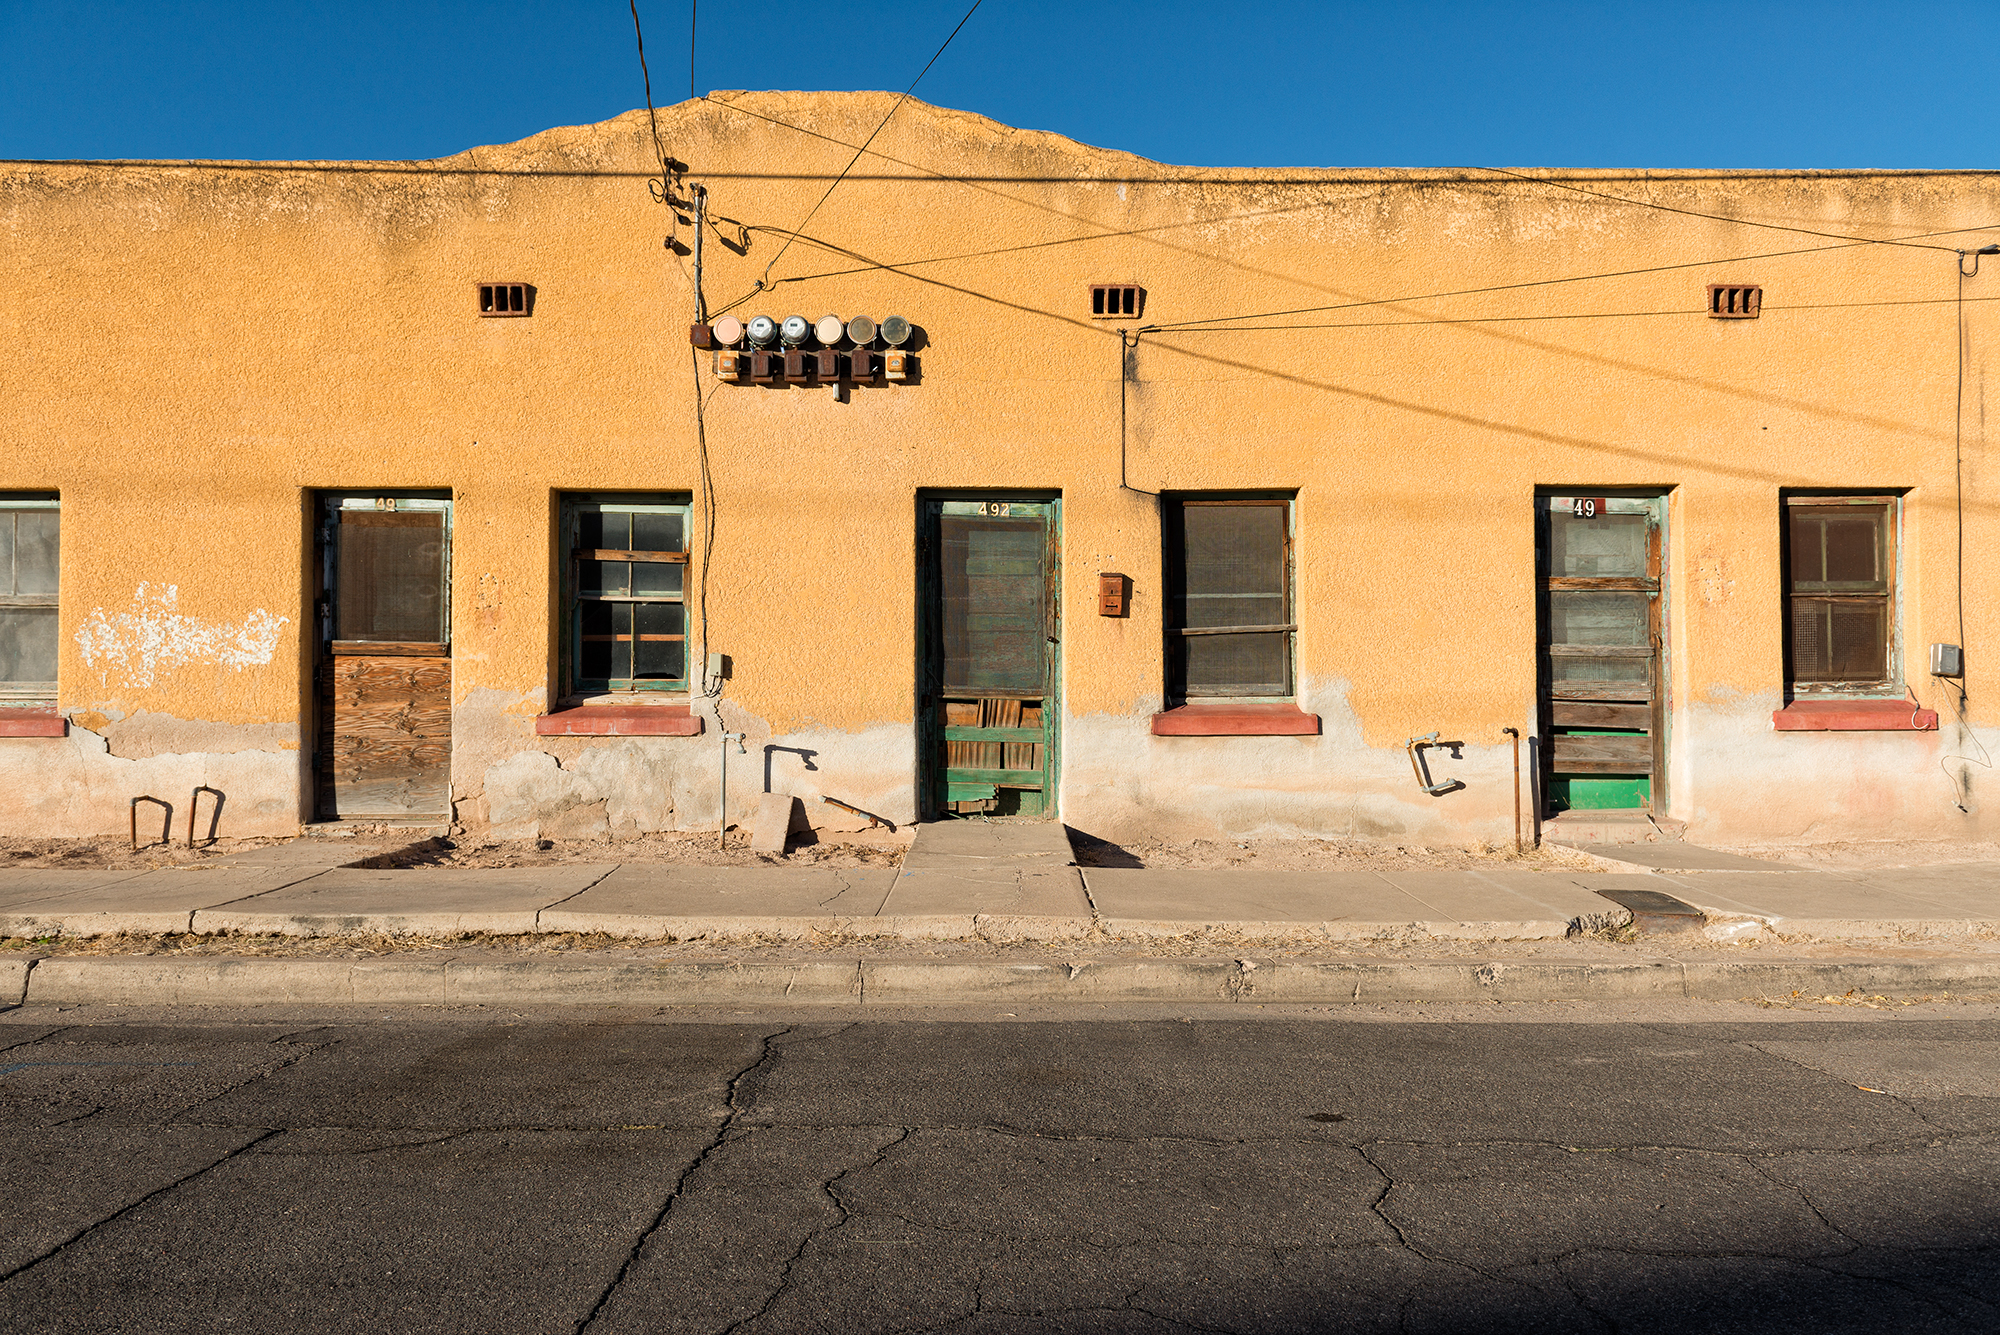 Rooms To Let. Tucson, Arizona, 2015